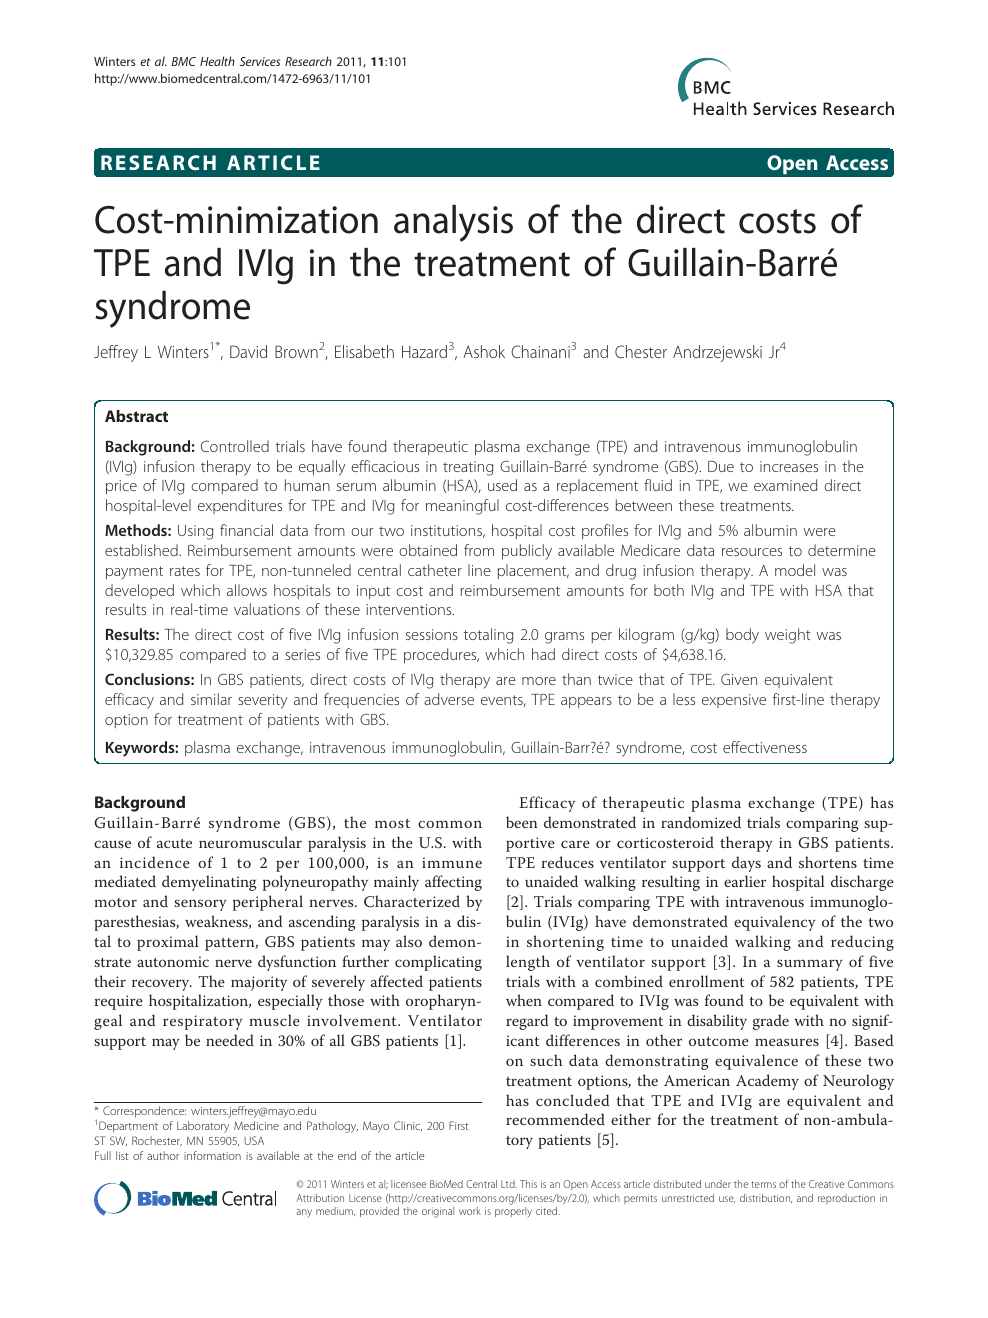 Cost-minimization analysis of the direct costs of TPE and